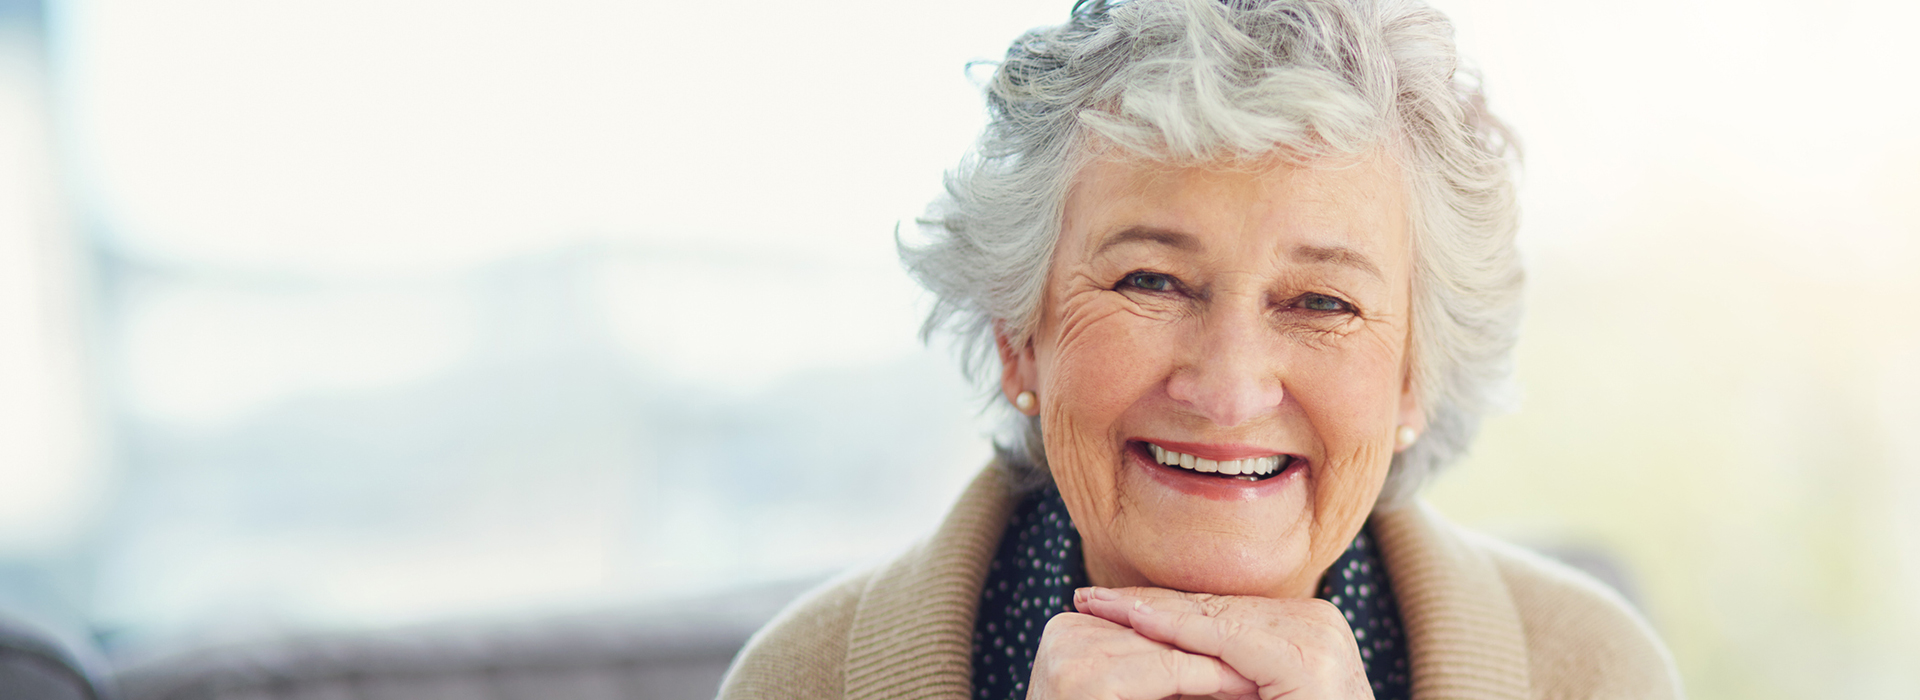 image of a happy female senior